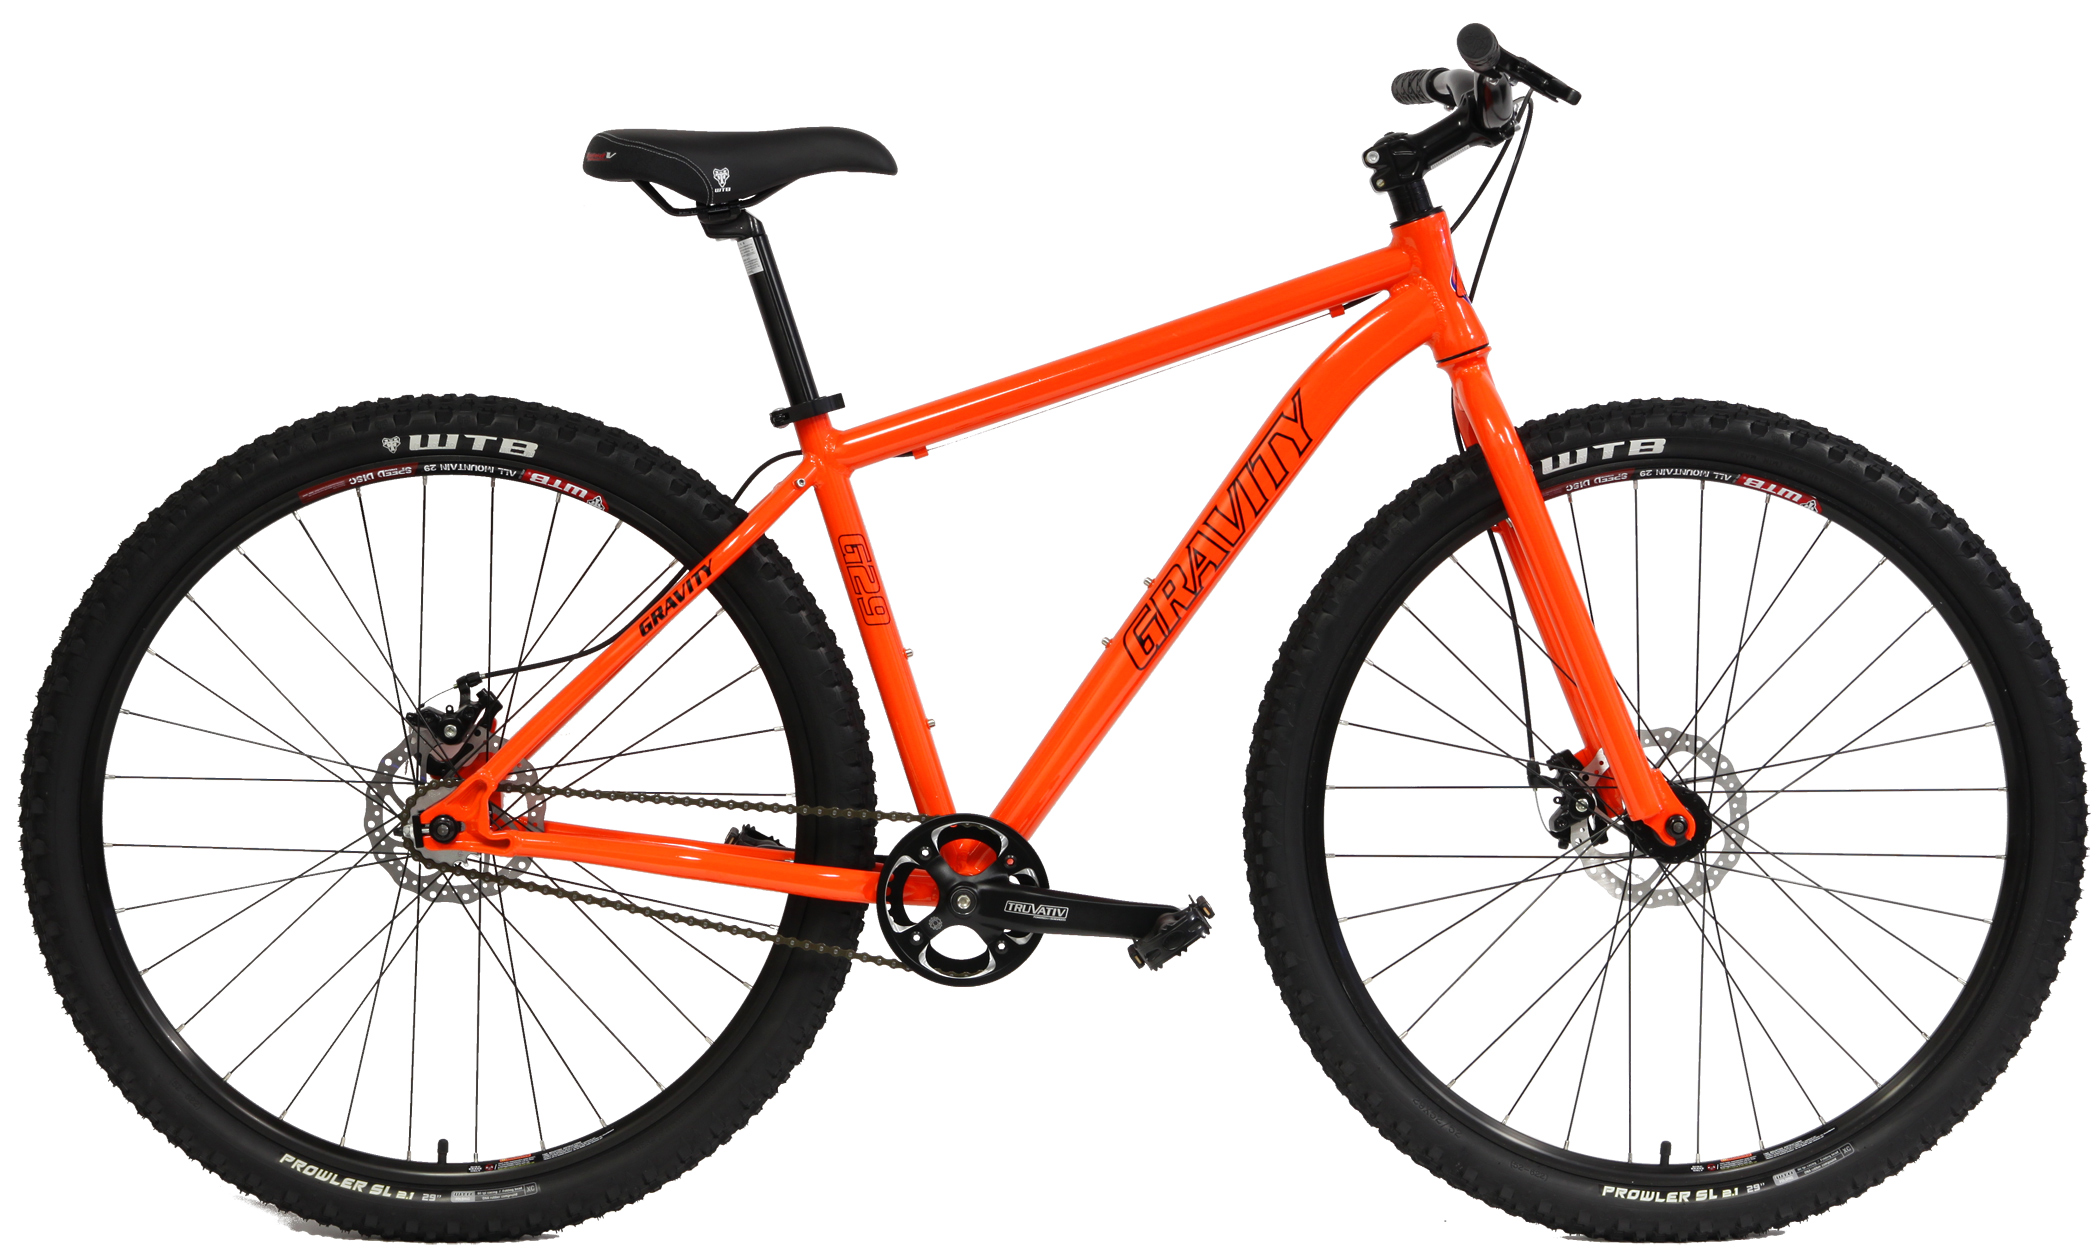 G29  - SINGLE SPEED ALUMINUM ATB w/ DISC BRAKES